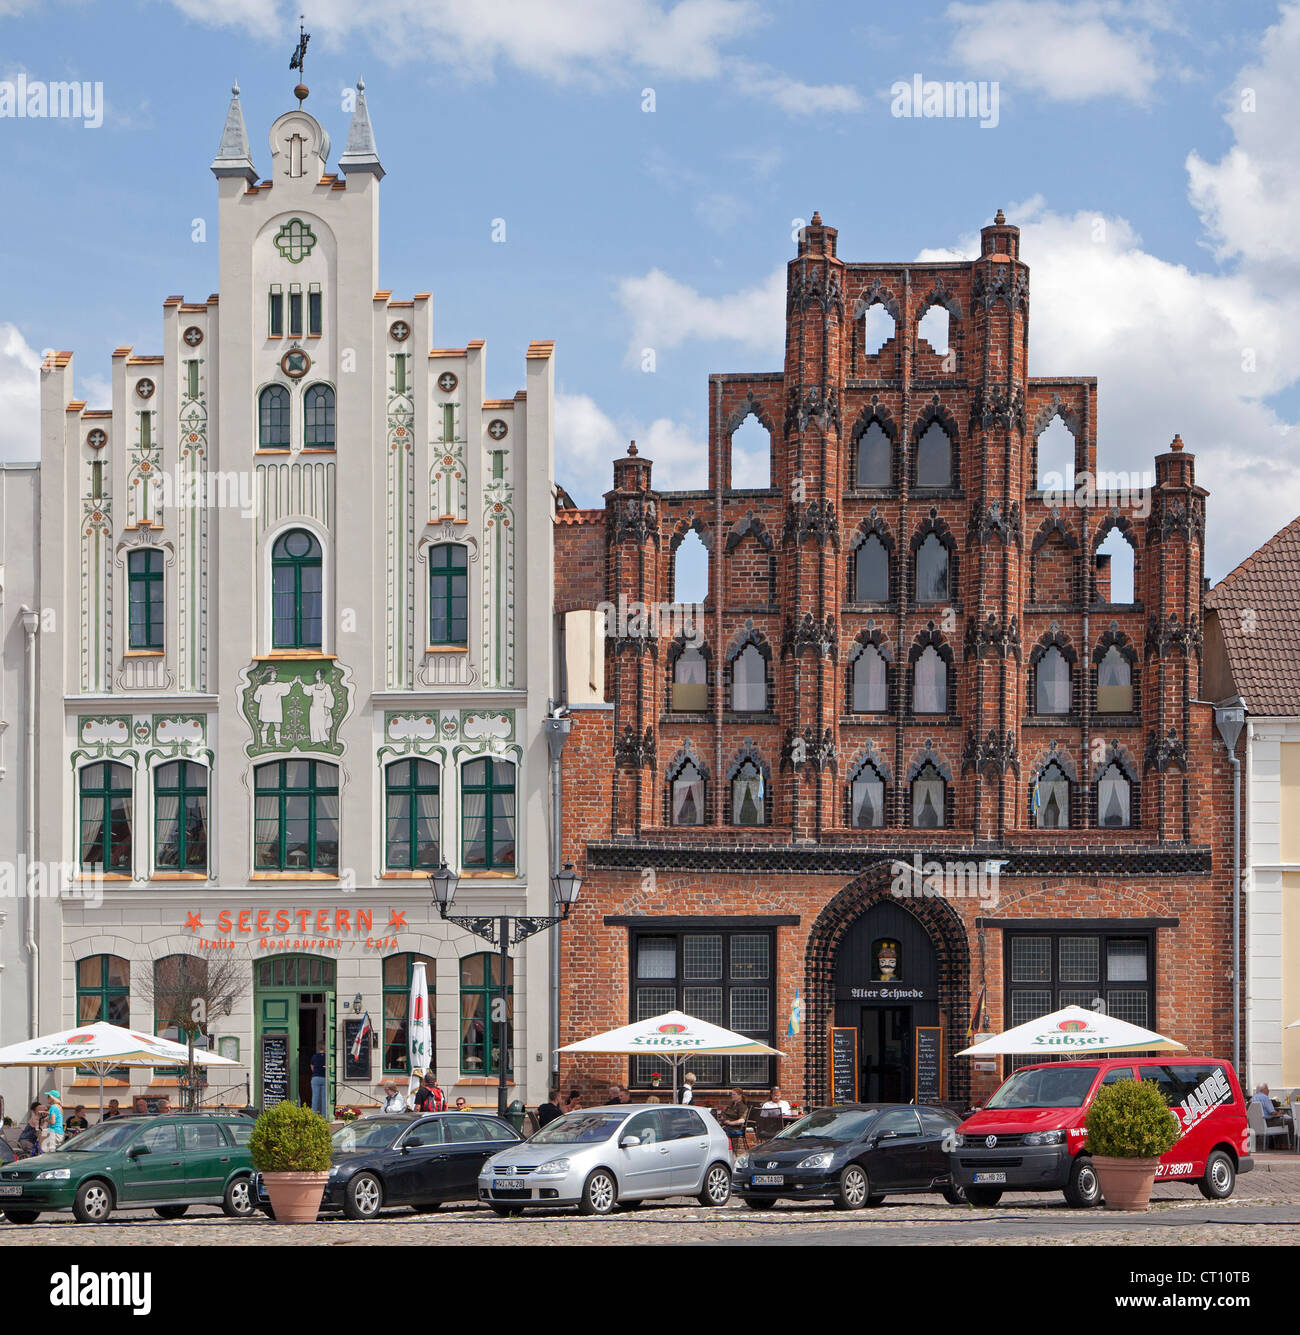 restaurants Seestern and Alter Schwede, market square, Wismar, Mecklenburg-West Pomerania, Germany Stock Photo